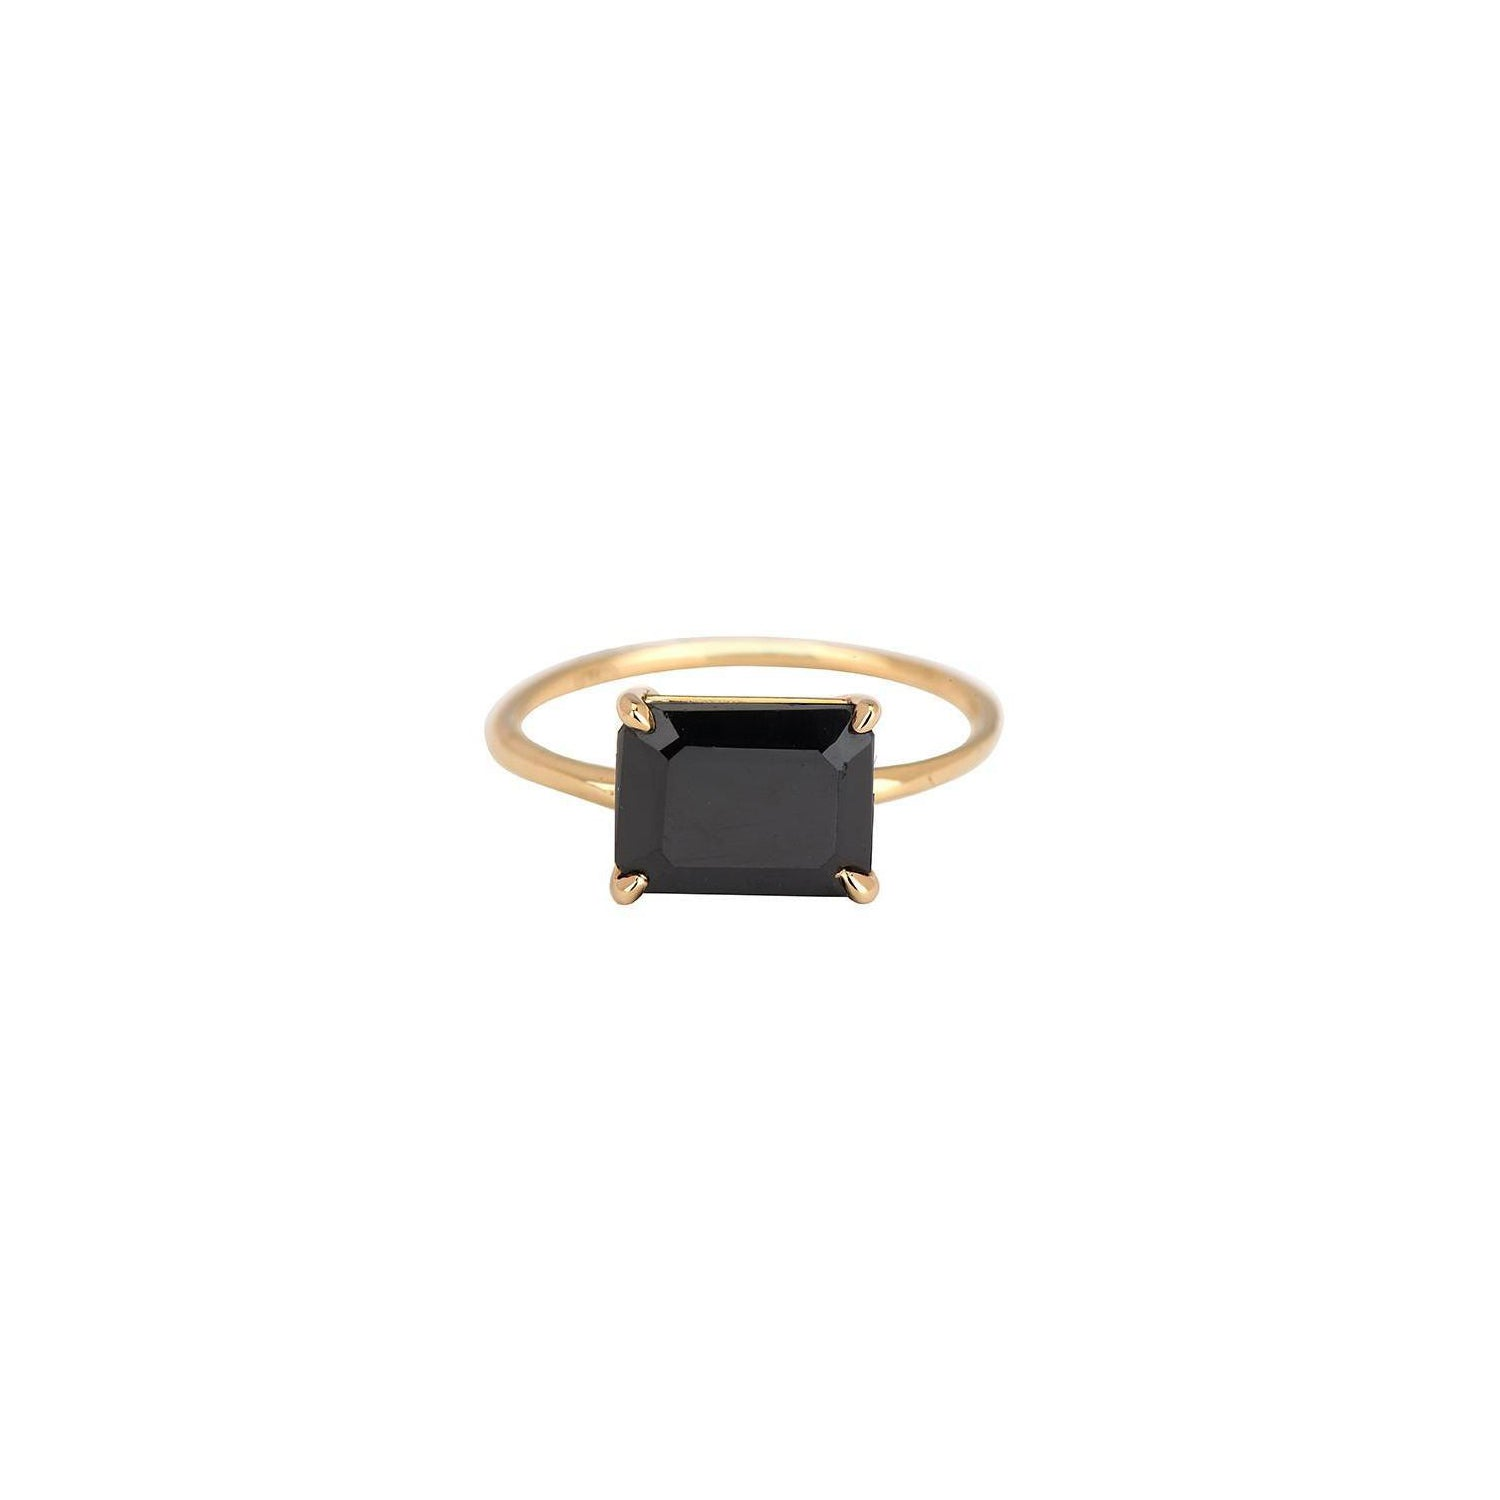 East West Onyx Ring by Jennie Kwon for Broken English Jewelry